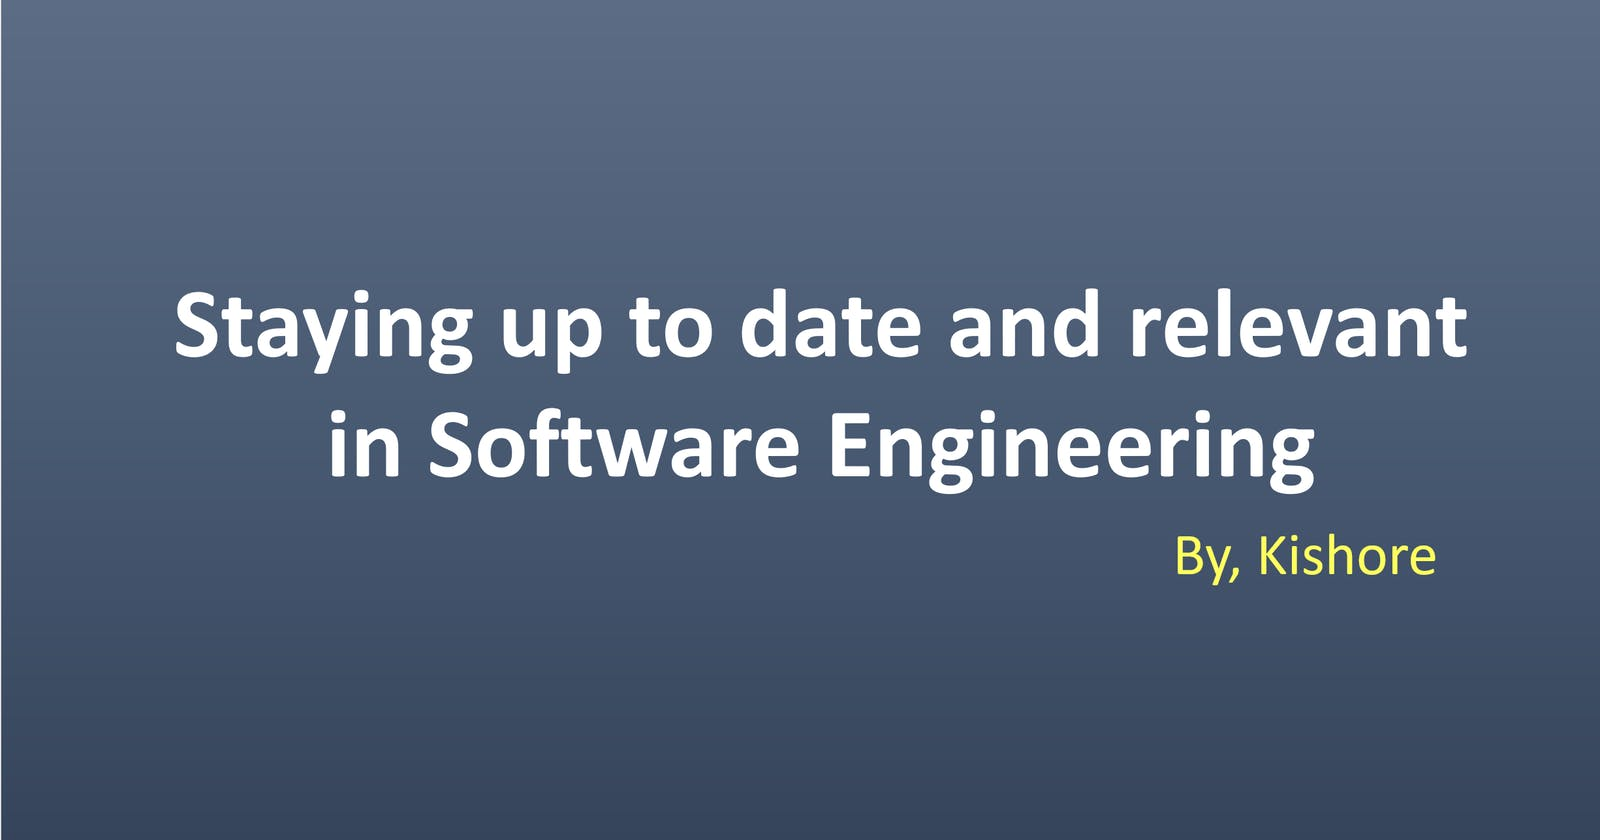 Staying up to date and relevant in Software Engineering